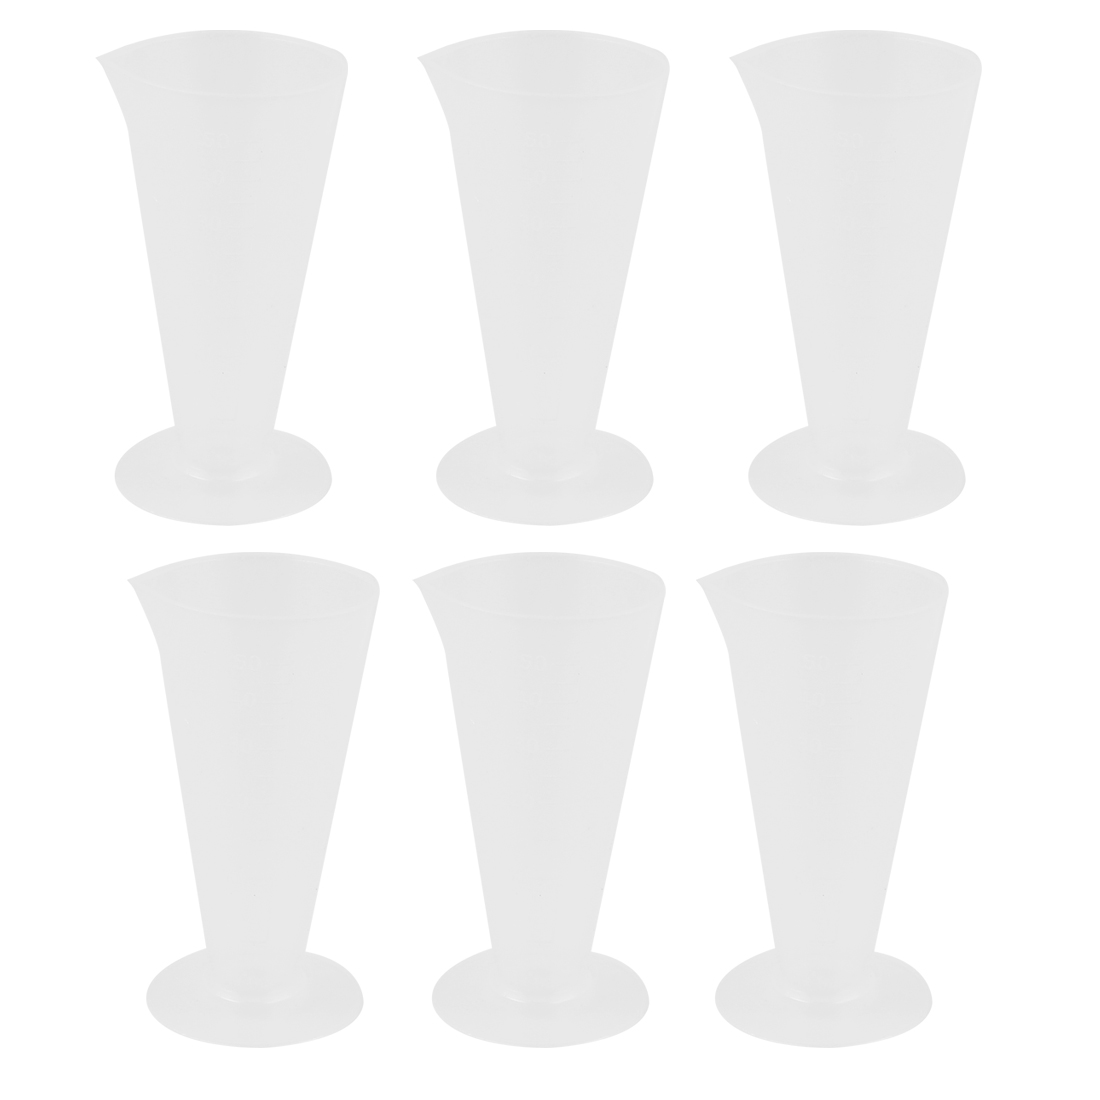 6 Pcs 50mL Clear White Plastic Conical Beaker Laboratory Graduated Measuring Cylinder Cup